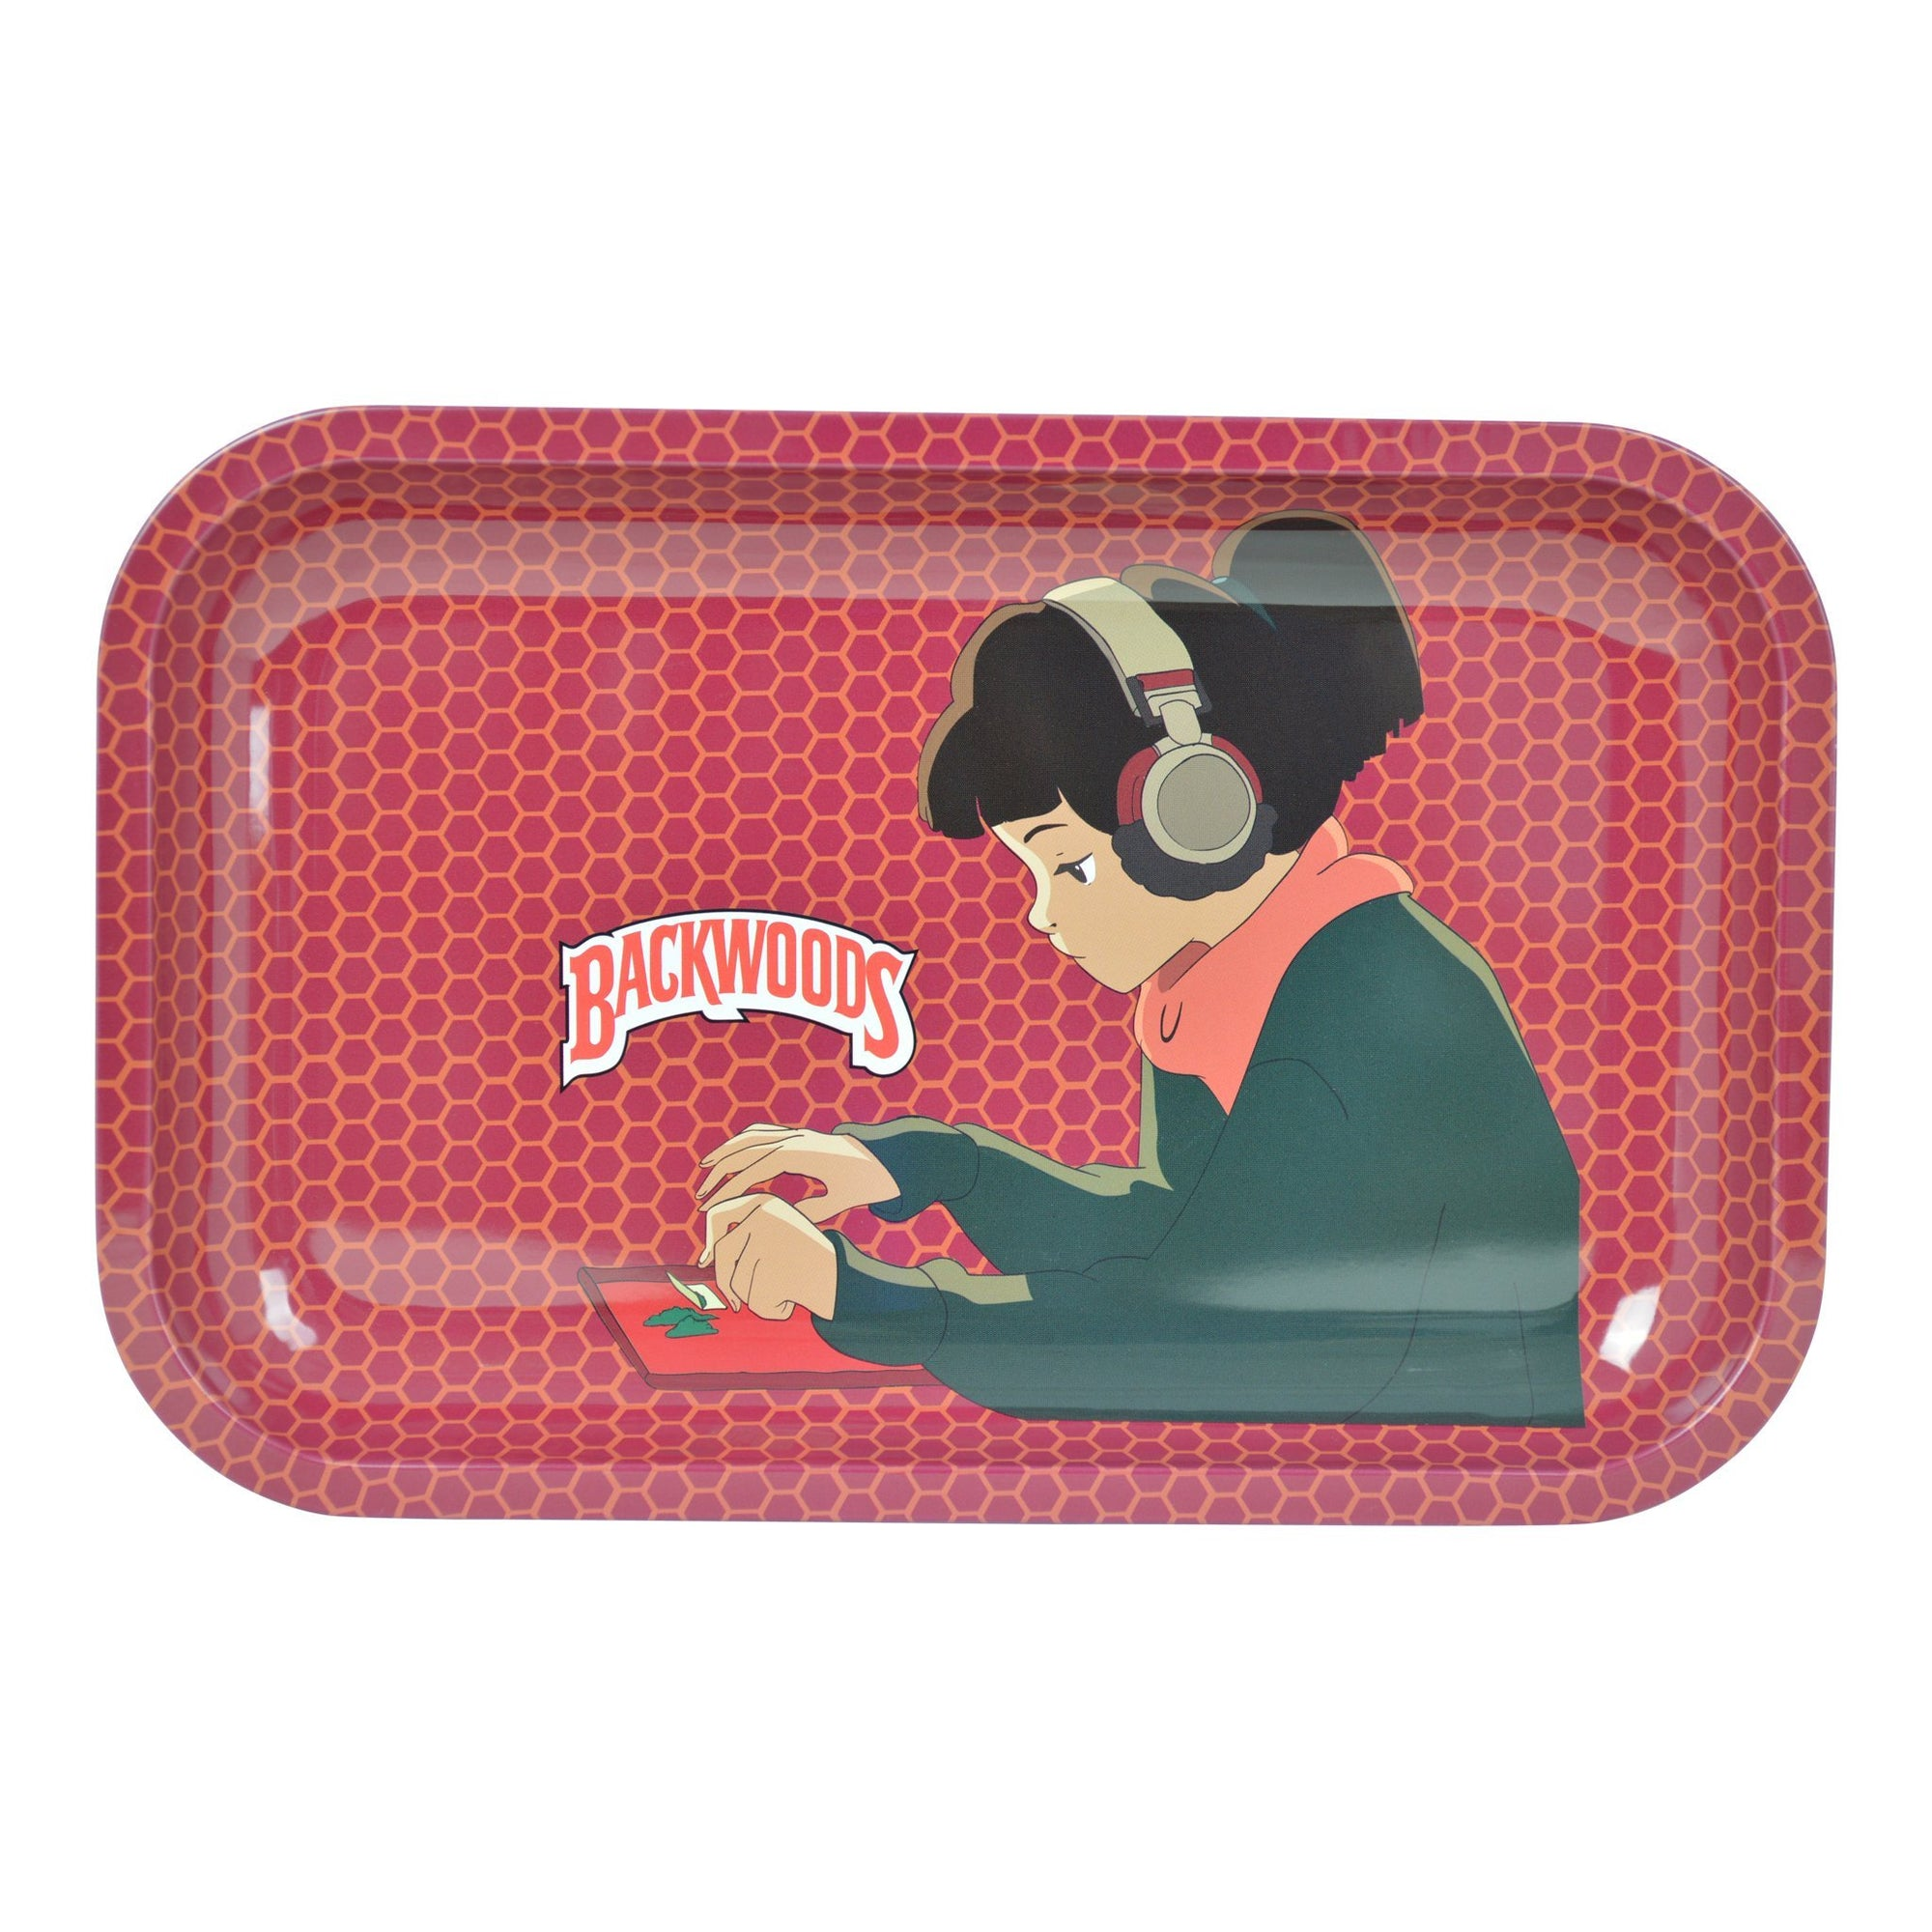 Full shot of 11 inch rolling tray girl with headphones design Backwood wording in red honeycomb print background